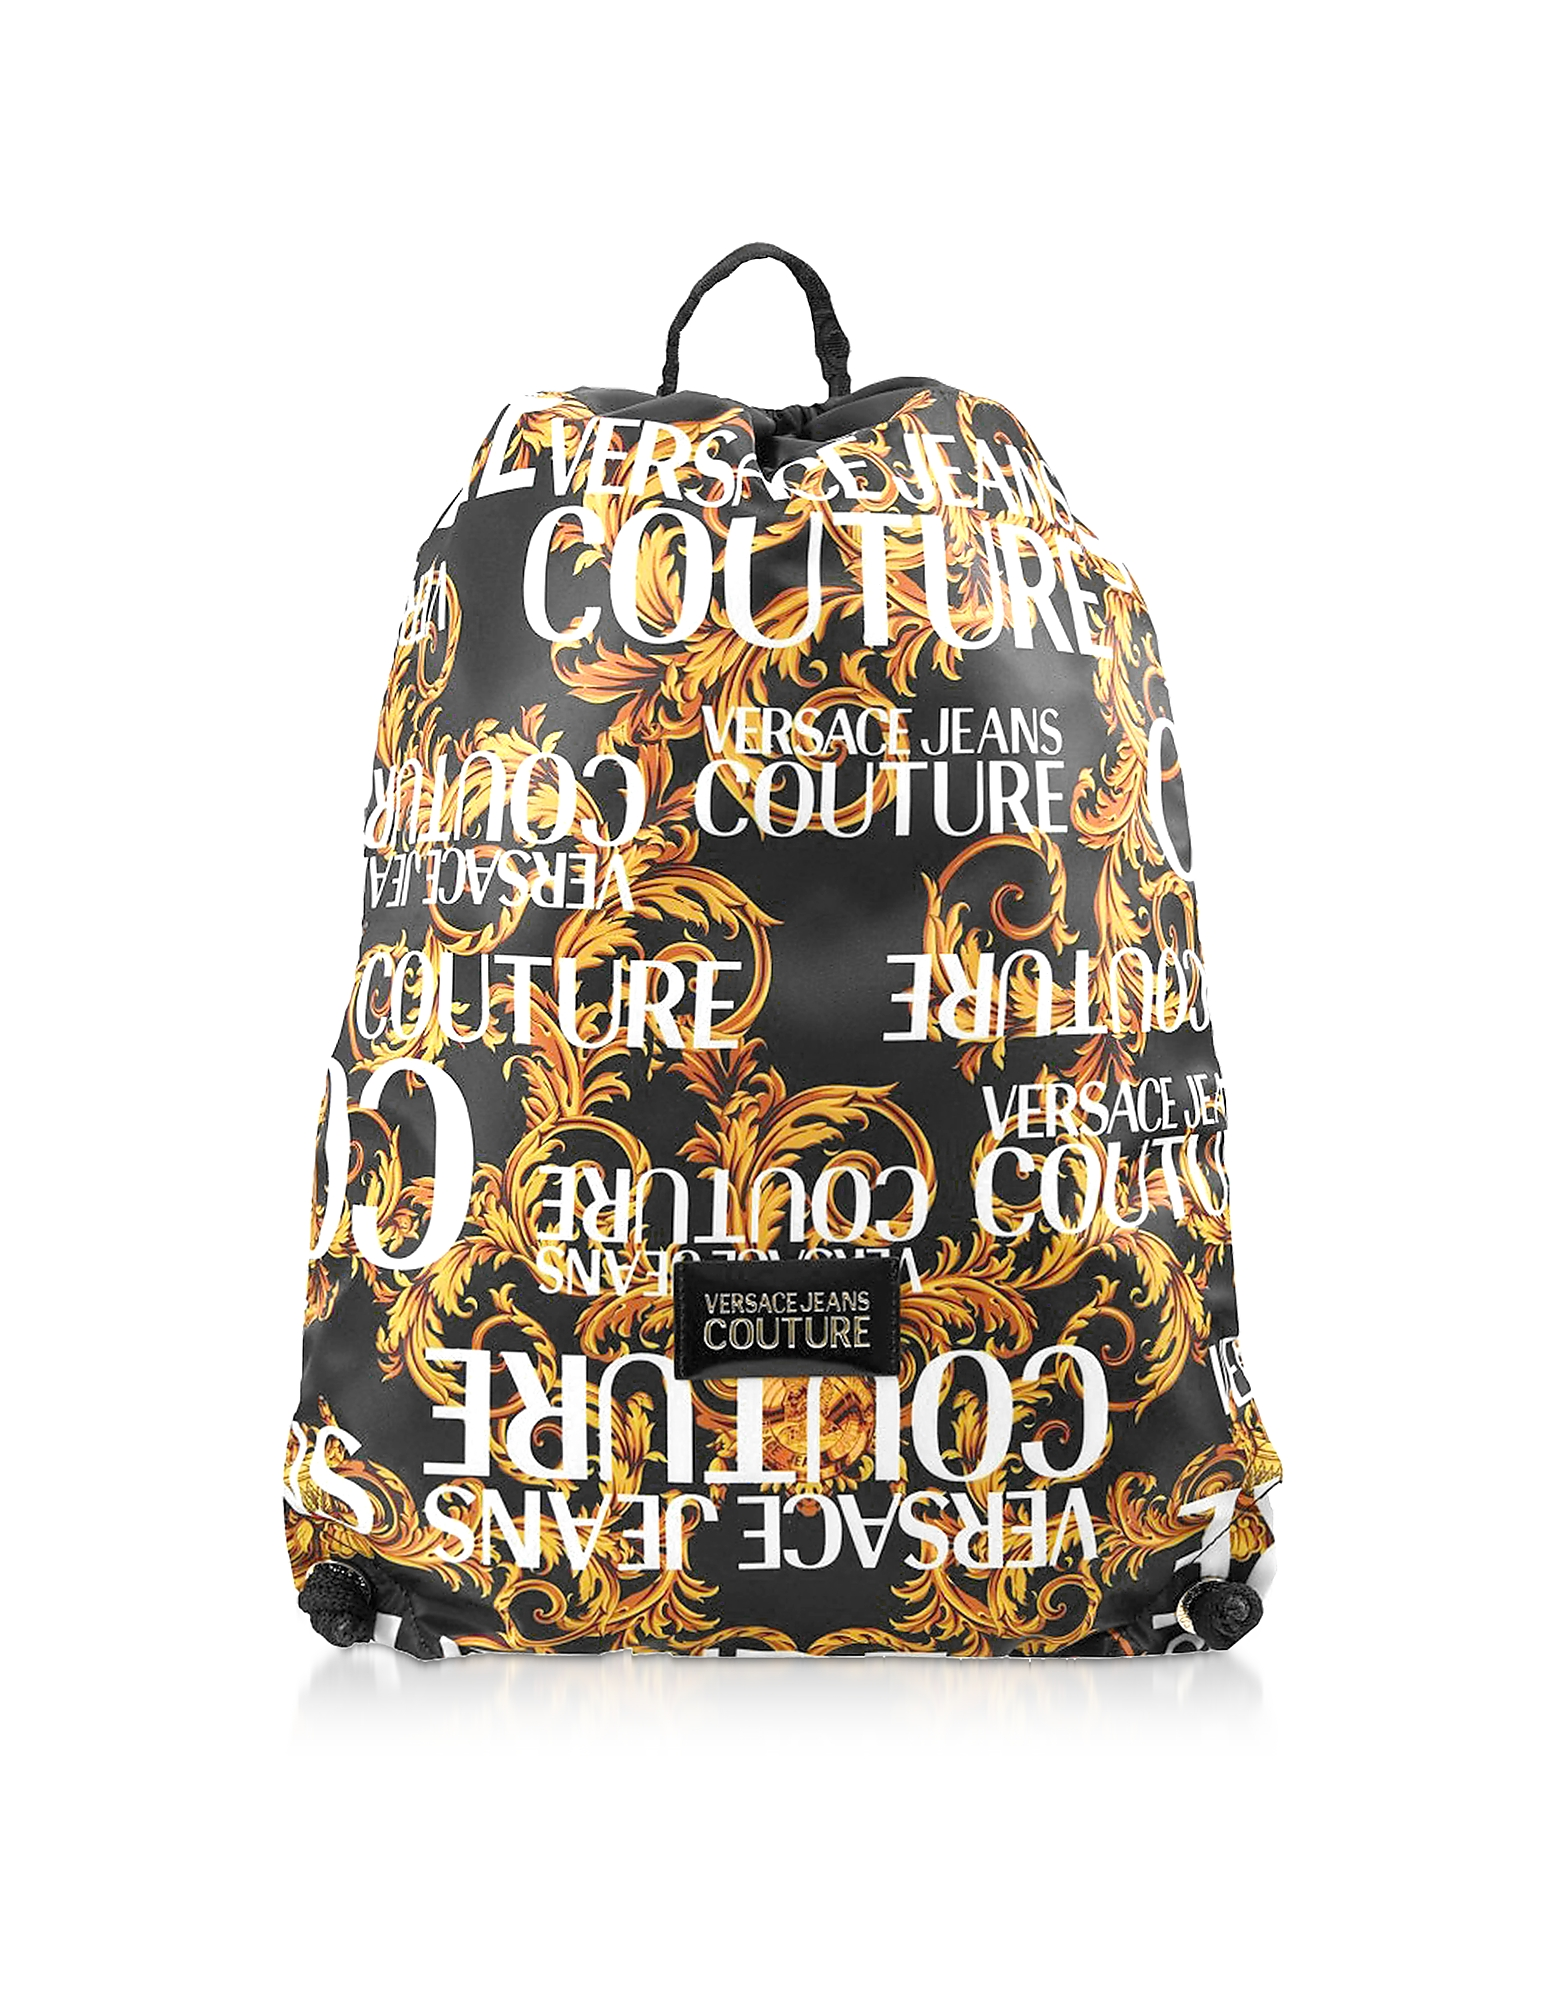 Barocco Printed Nylon Drawstring Backpack